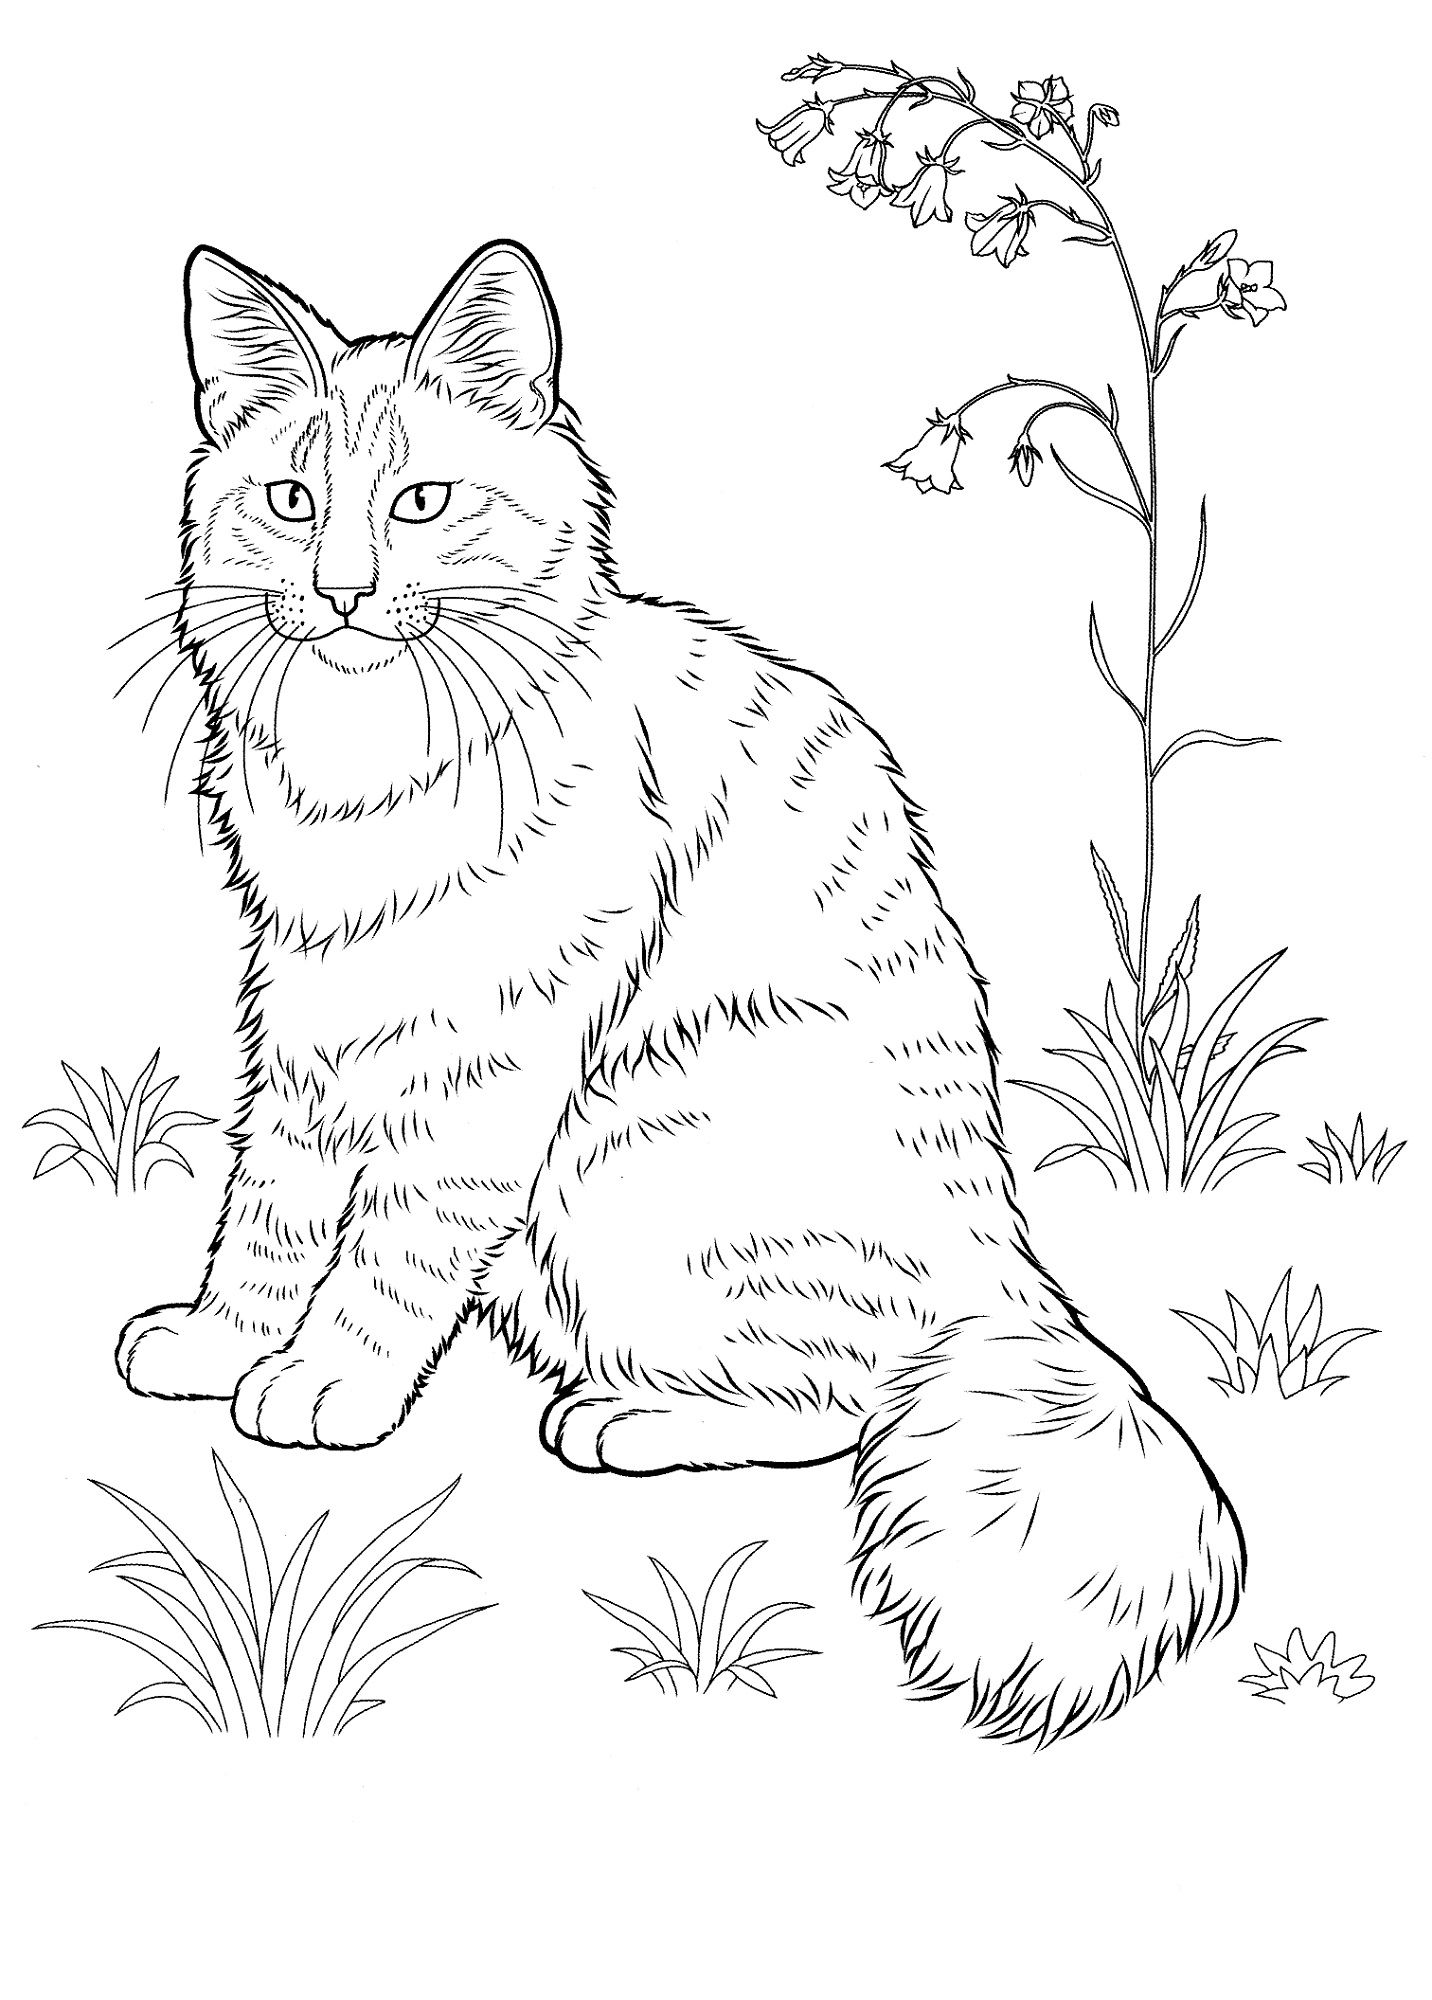 Adorable Cat Coloring Pages Cat Coloring Page Animal Coloring Pages Dog Coloring Page